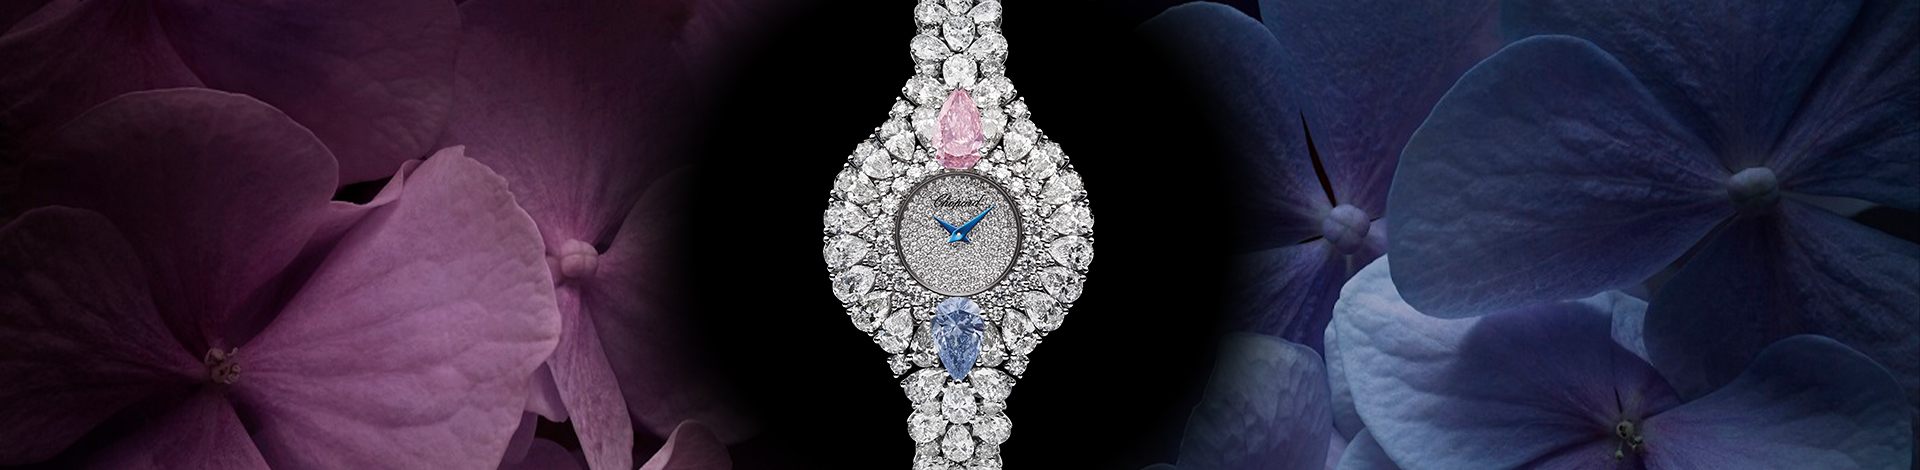 """$5.7 million ladies watch - the """"Magari"""" by Chopard stuns watch and jewellery enthusiasts around the world article hero image"""